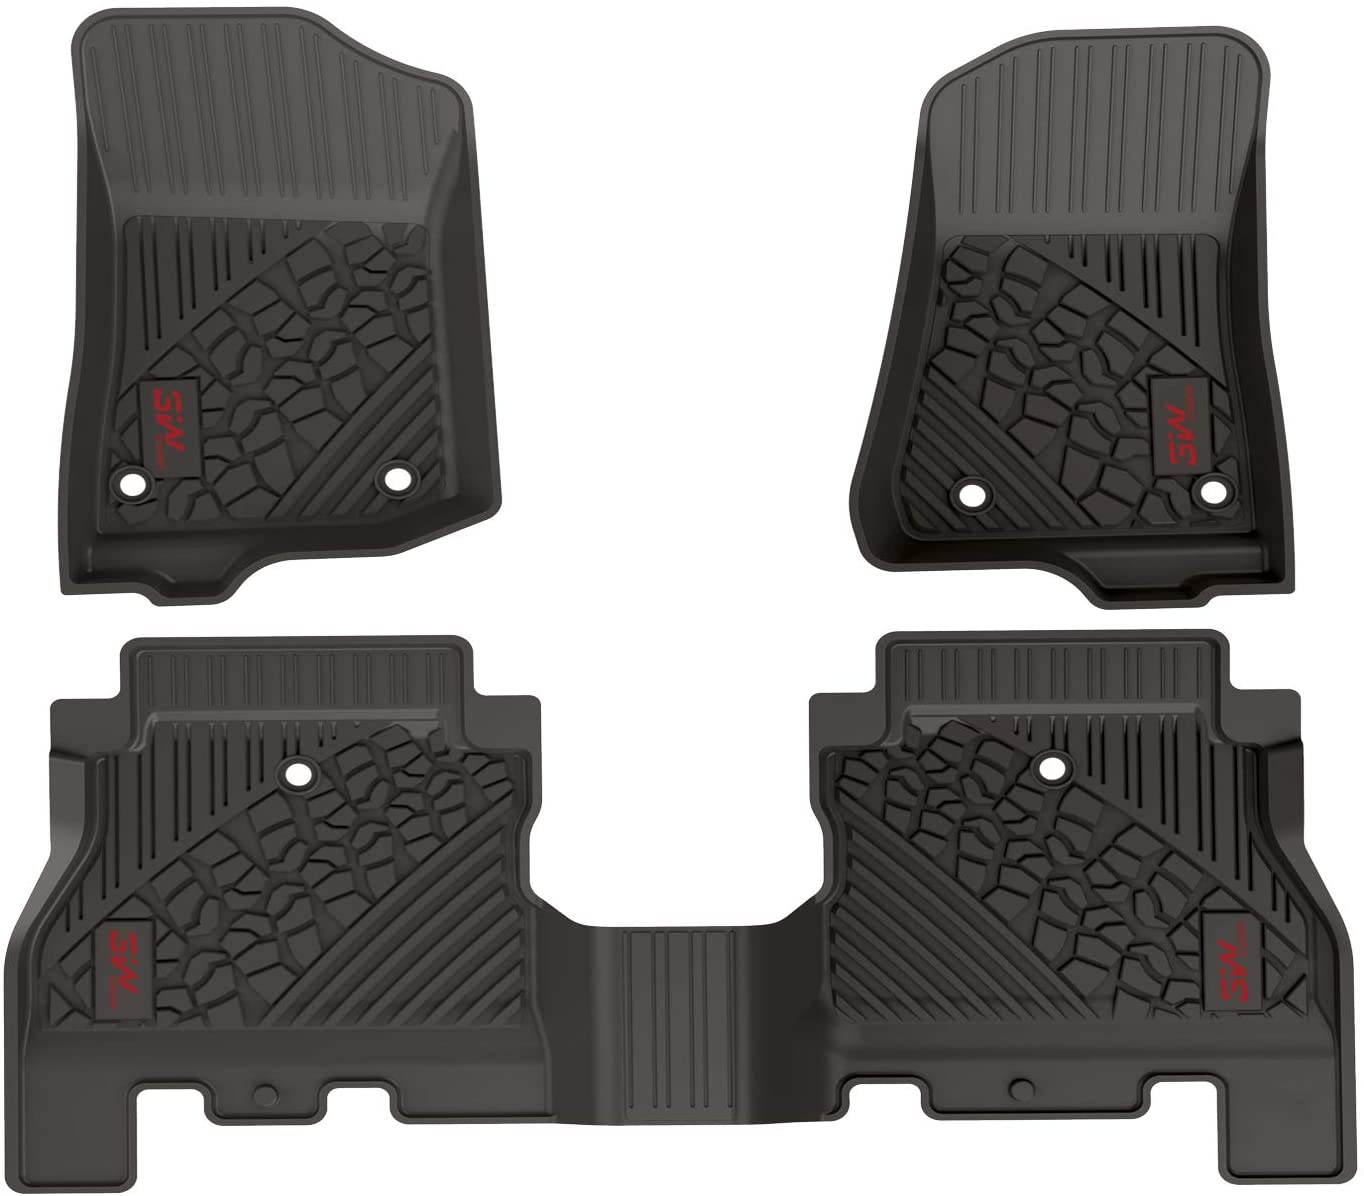 3W Floor Mats for Jeep Wrangler JL 2018 2019 2020 2021- Heavy Duty Custom Fit Floor Liners All Weather Odorless TPE Car Floor Mats 1st & 2nd Row for JL Limited 4 Doors (Not for JK), Black